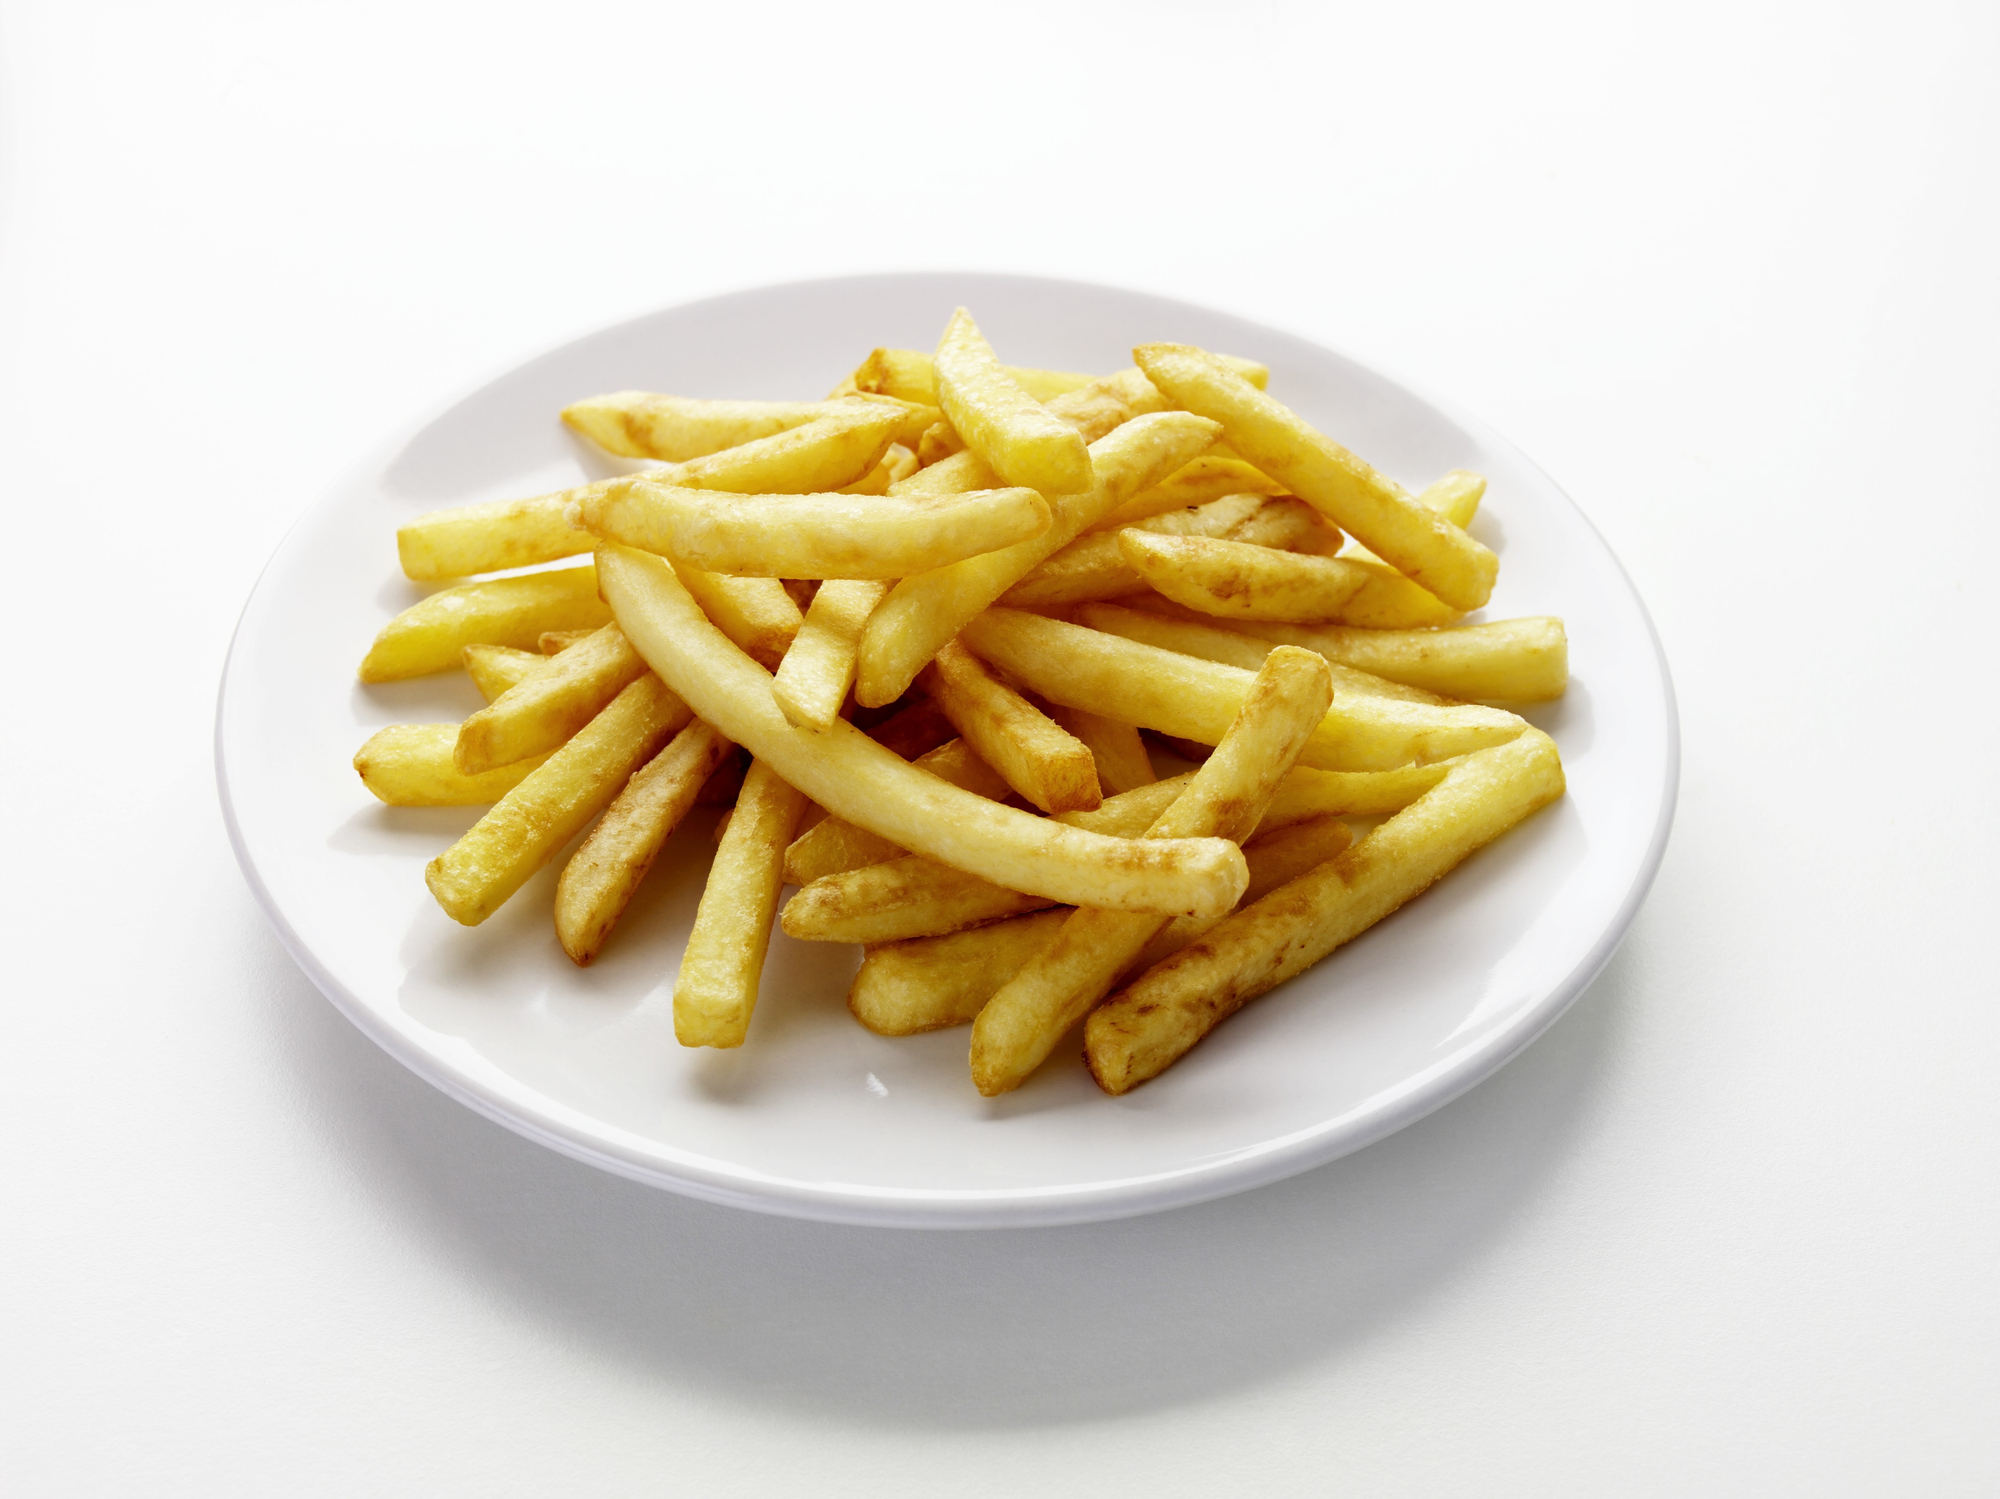 A plate of chips